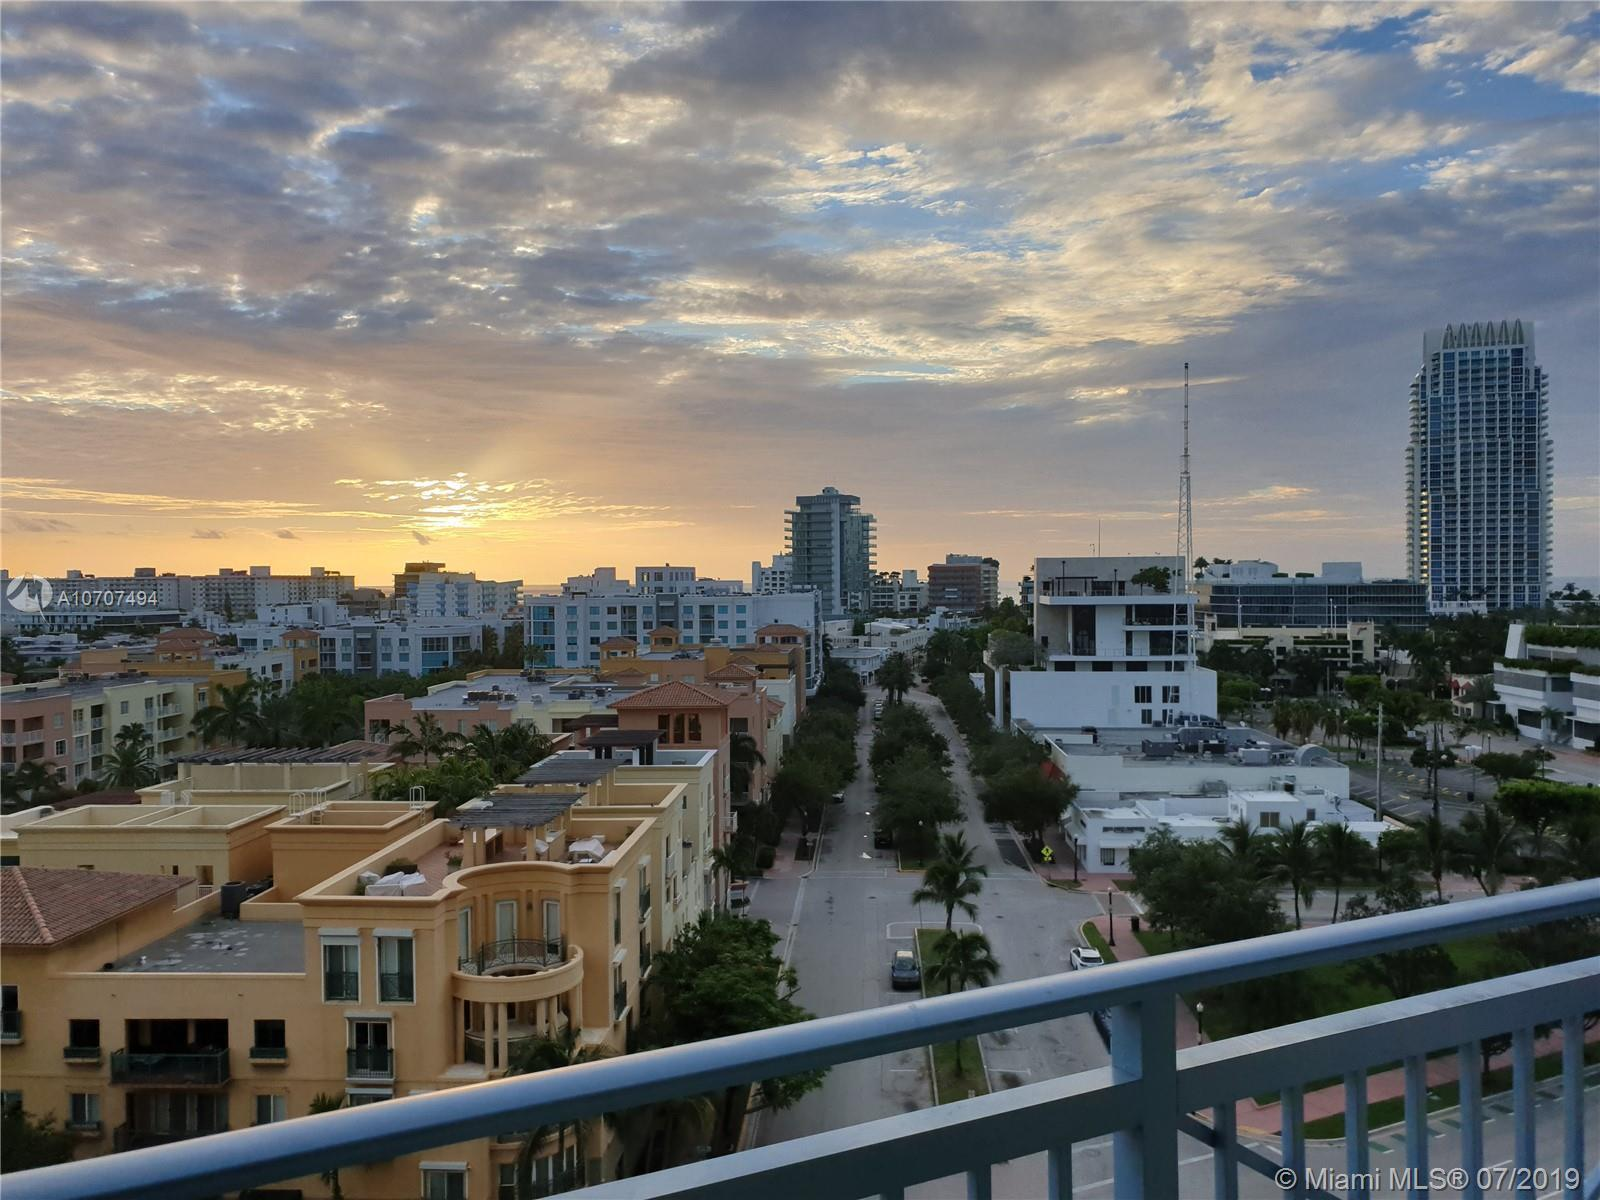 1-bedroom at the Yacht Club at Portofino condo located in the exclusive South of Fifth neighborhood,